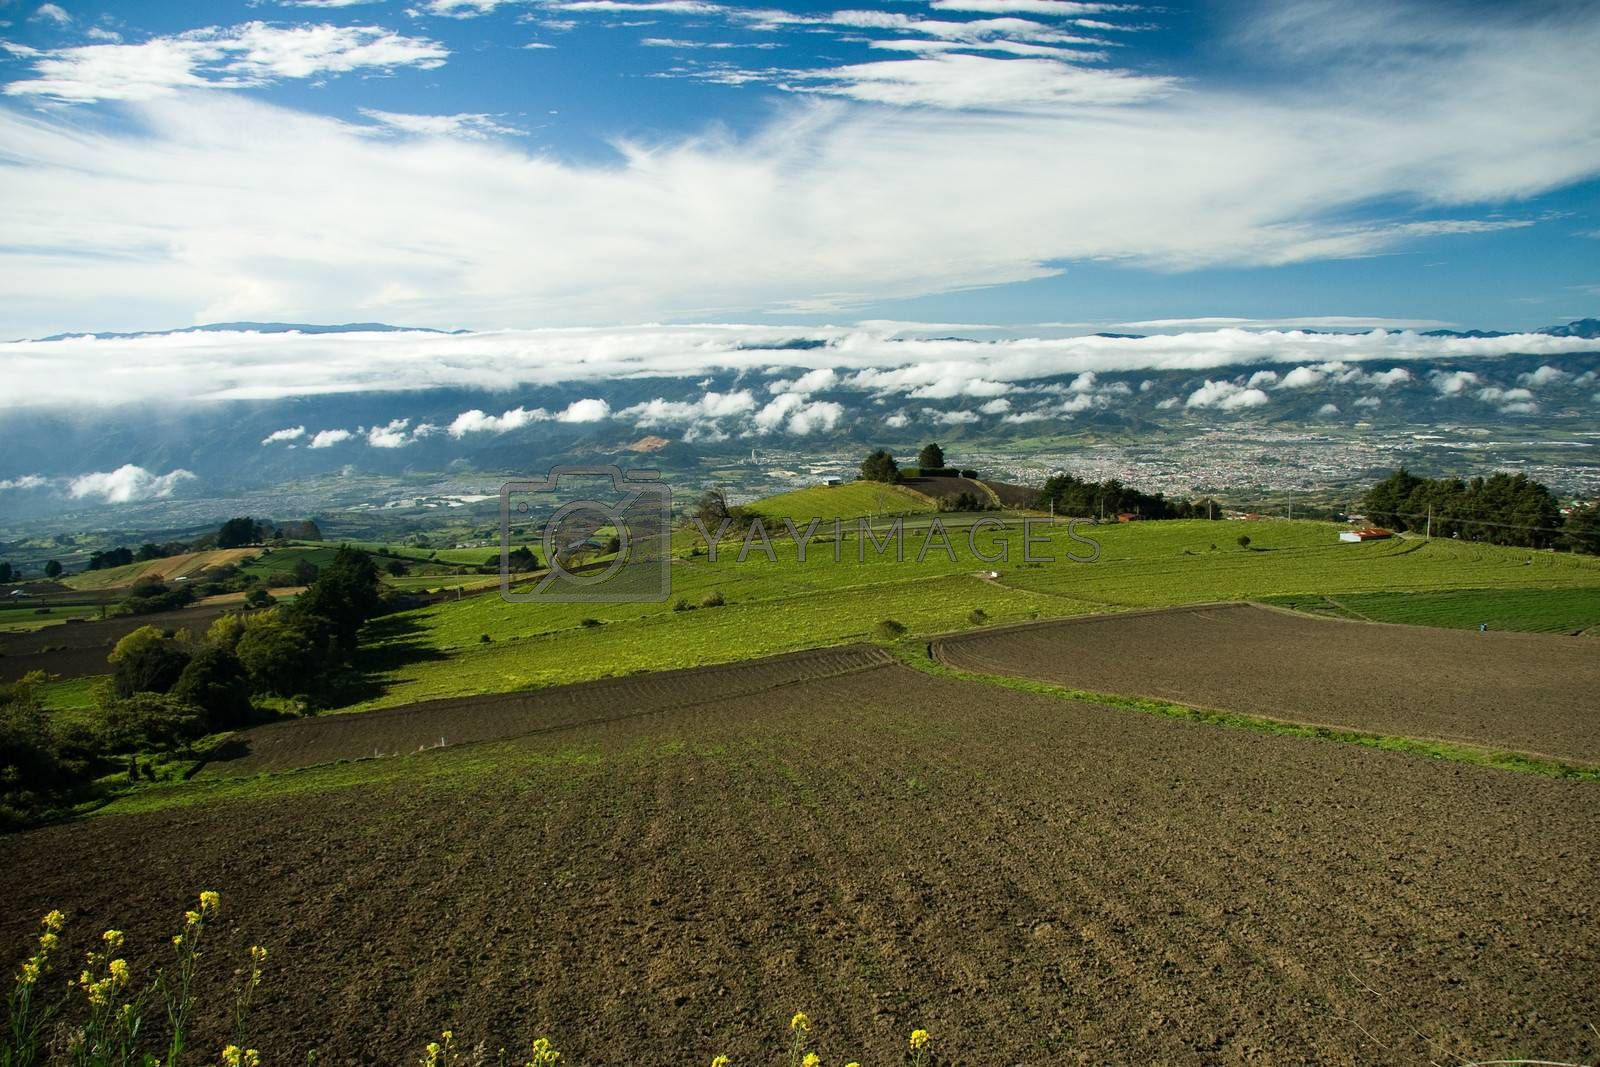 Scenic view of plowed field in countryside field with cloudscape background, Costa Rica.